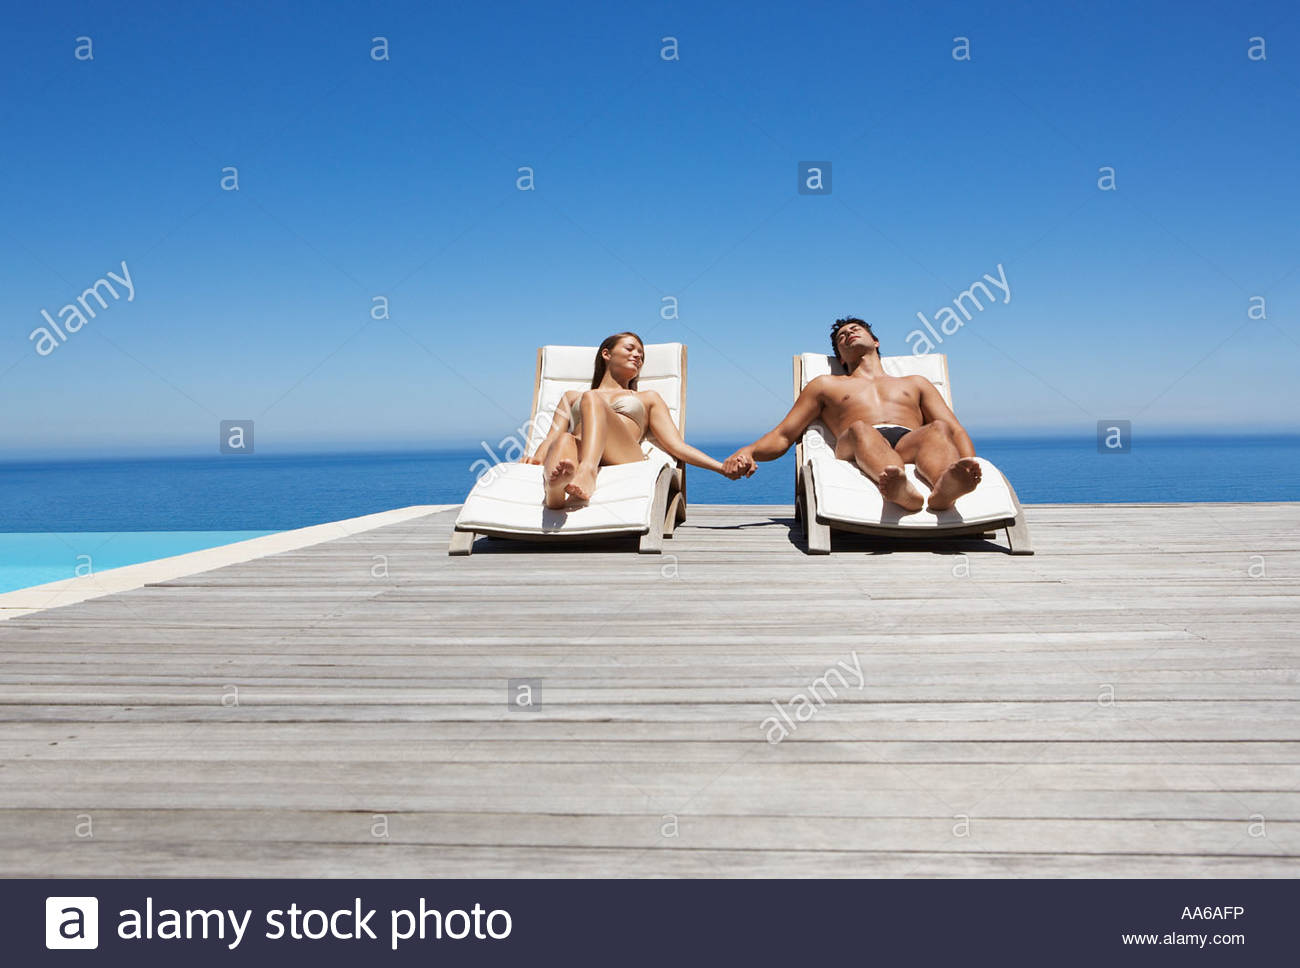 Sunbathing Chairs Man And Woman In Deck Chairs Sunbathing Holding Hands